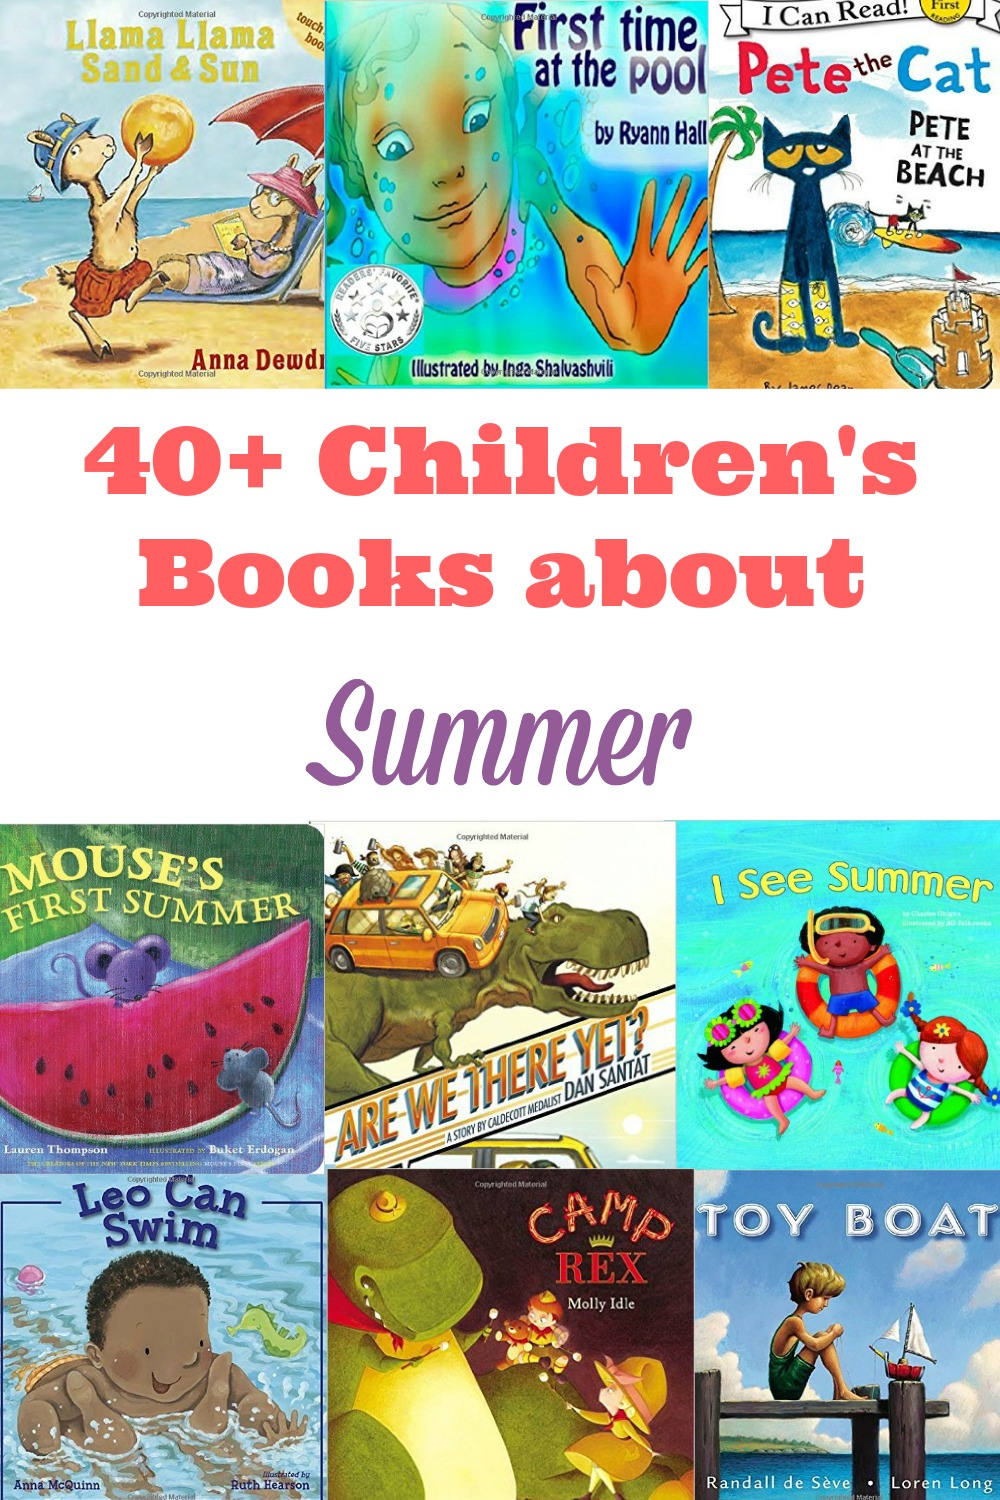 40 books about summer that kids should read including bestseller and classic titles you can enjoy as a family.